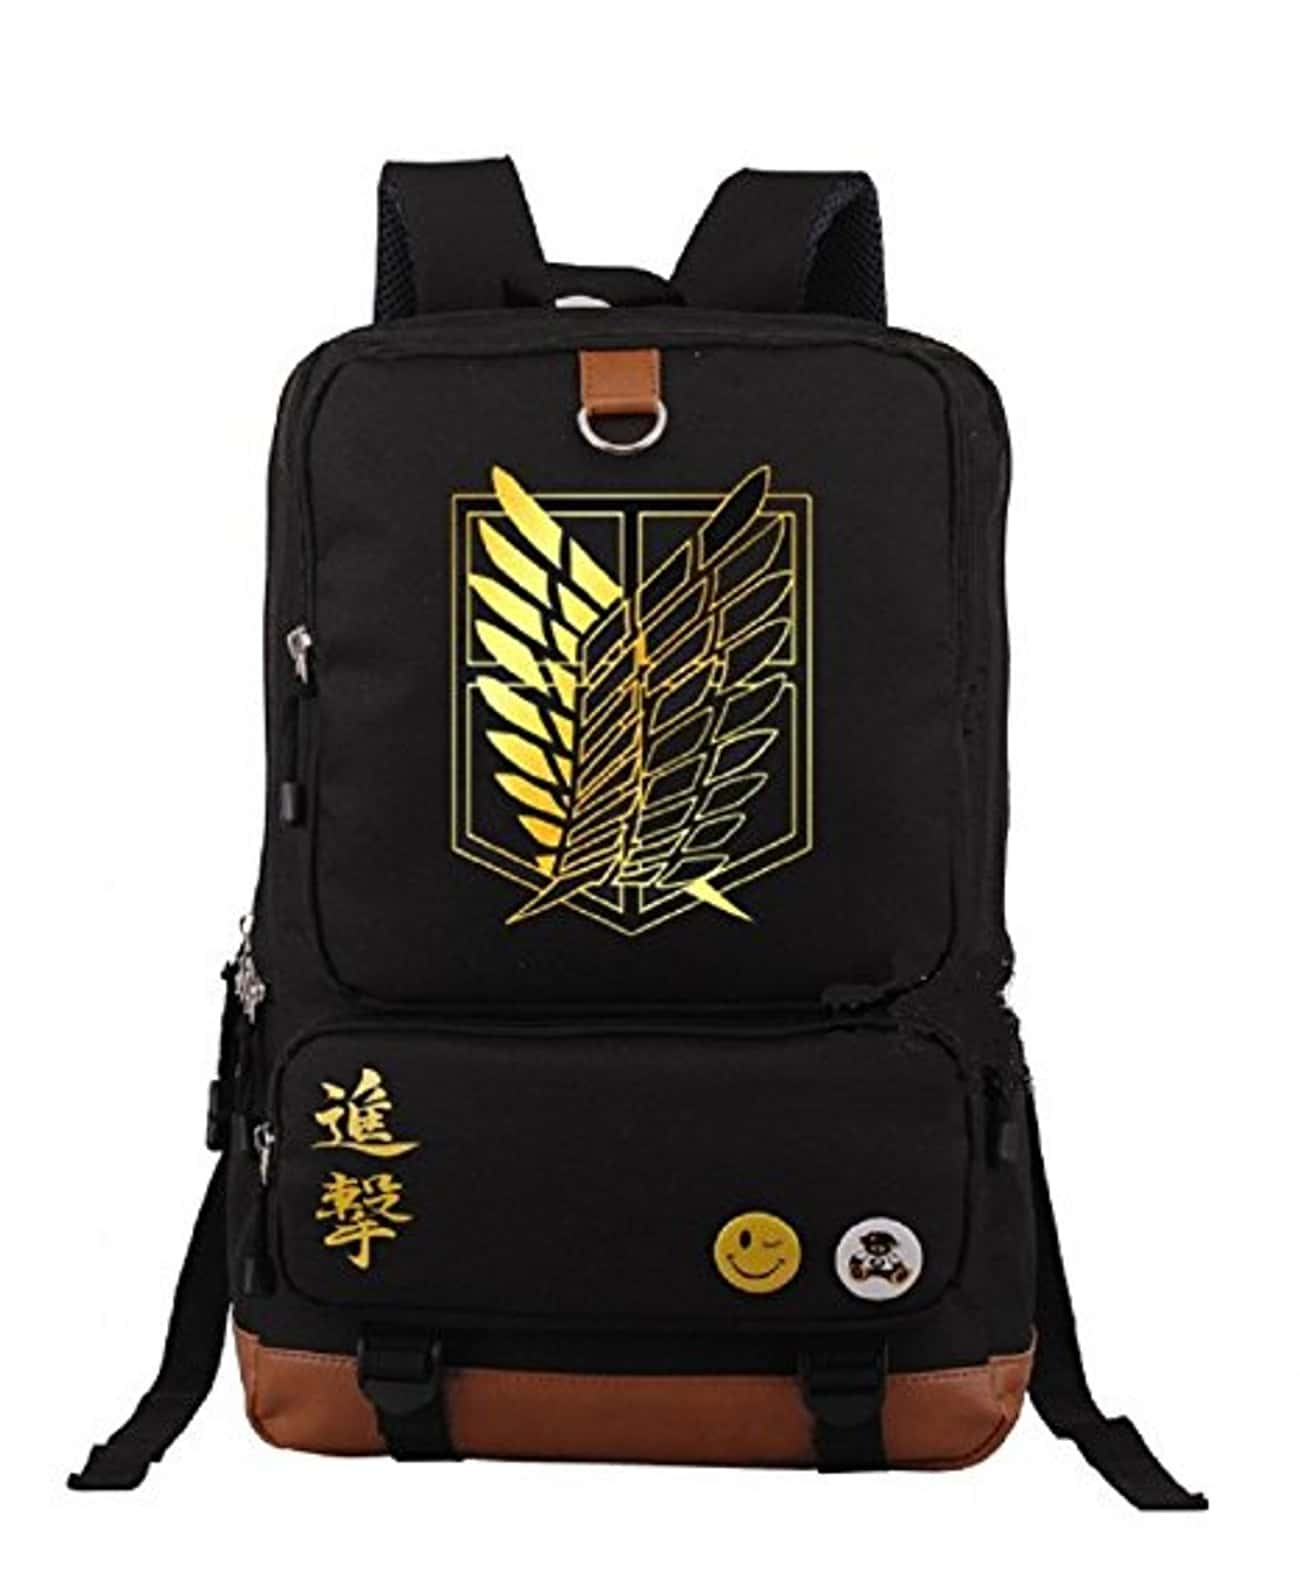 YOYOSHome Attack on Titan Backpack